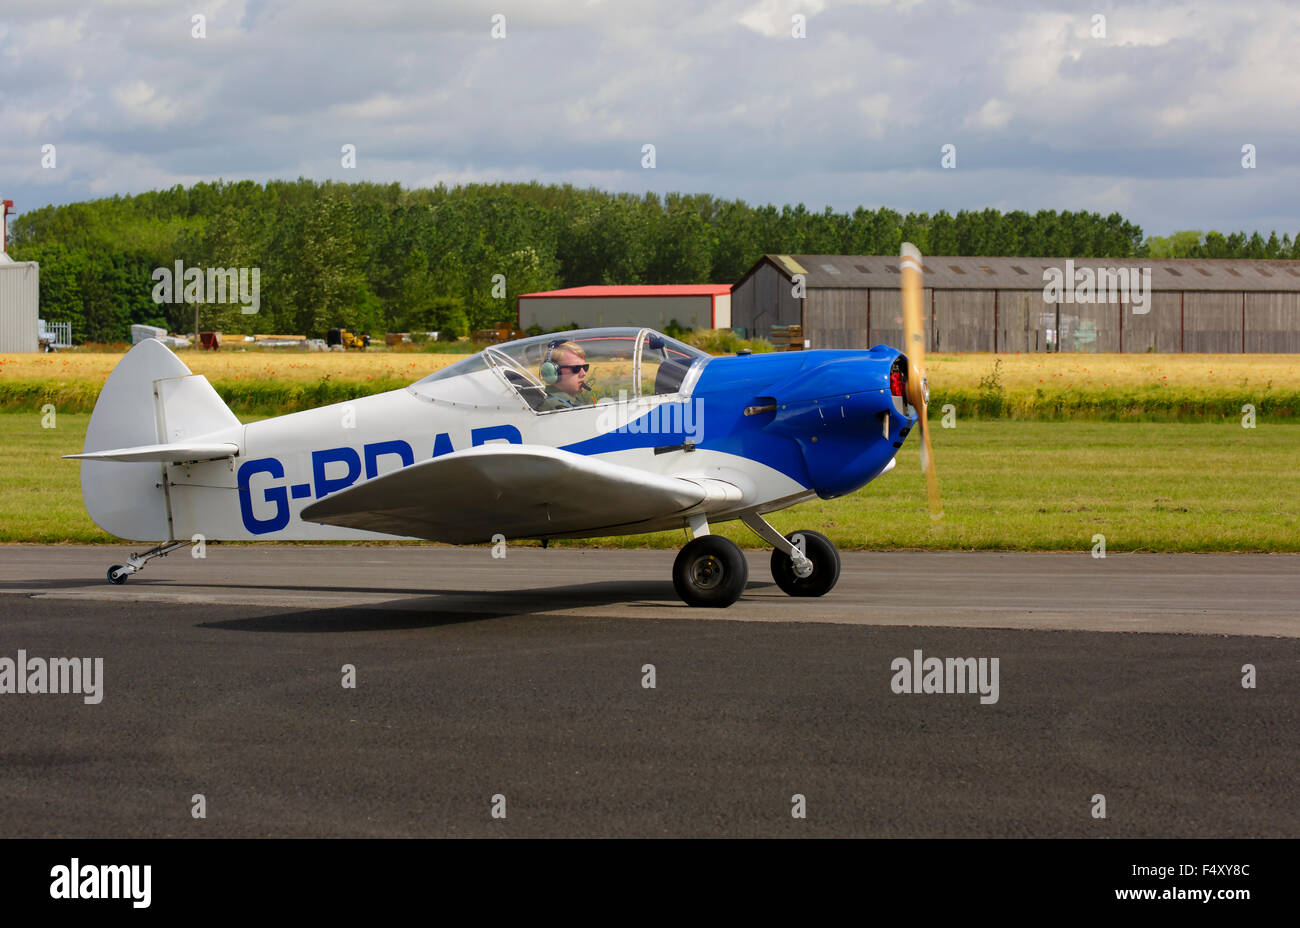 Taylor Monoplane G-BDAD taxiing at Breighton Airfield - Stock Image